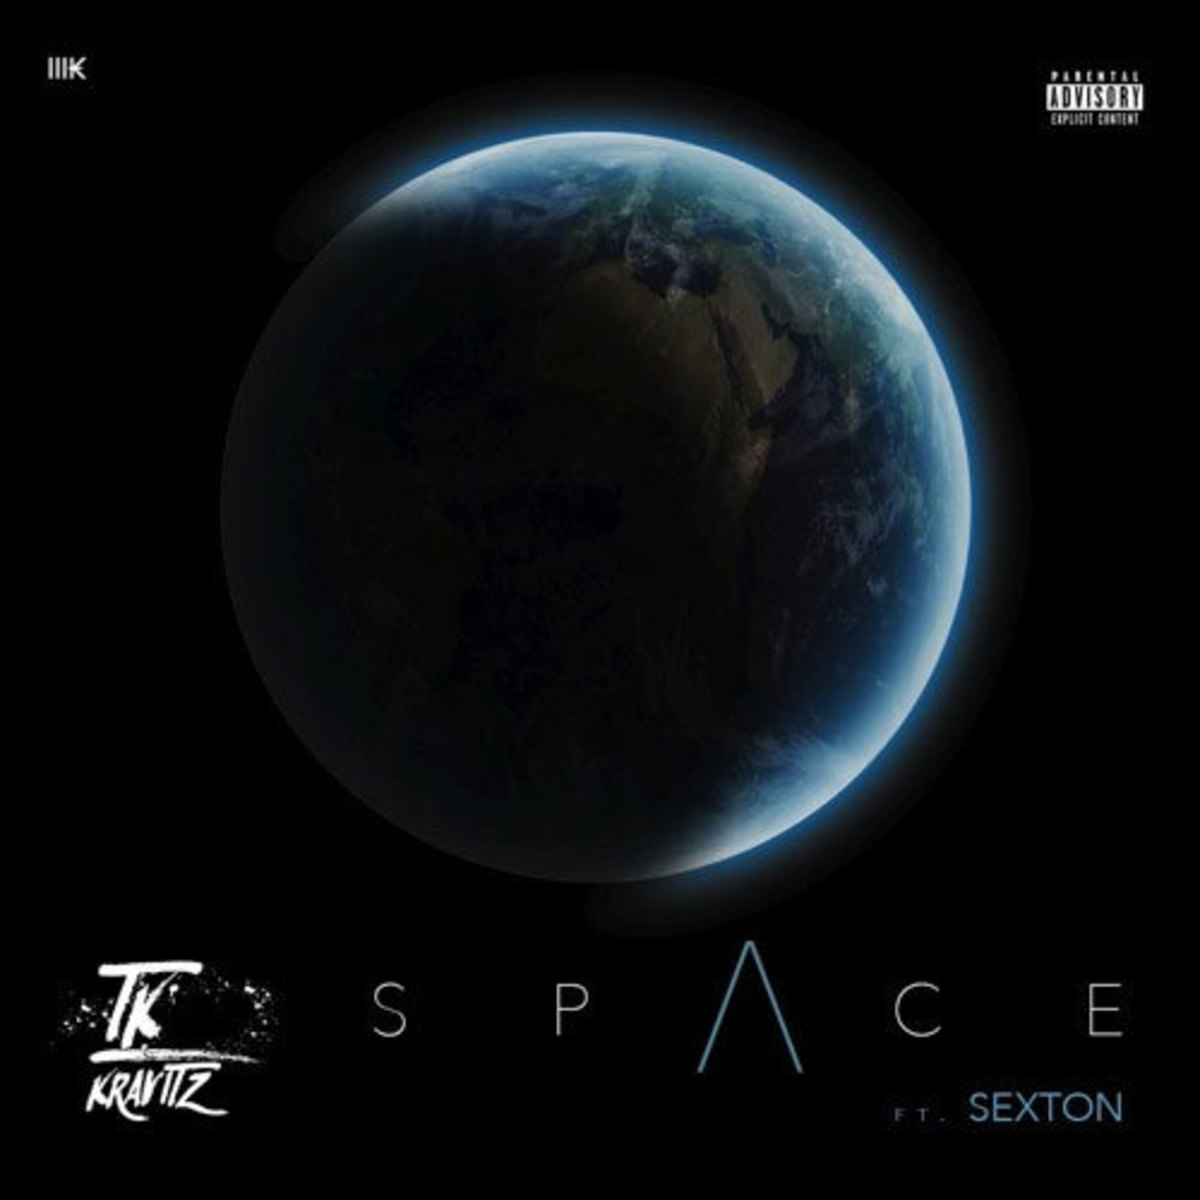 tk-kravitz-space.jpg